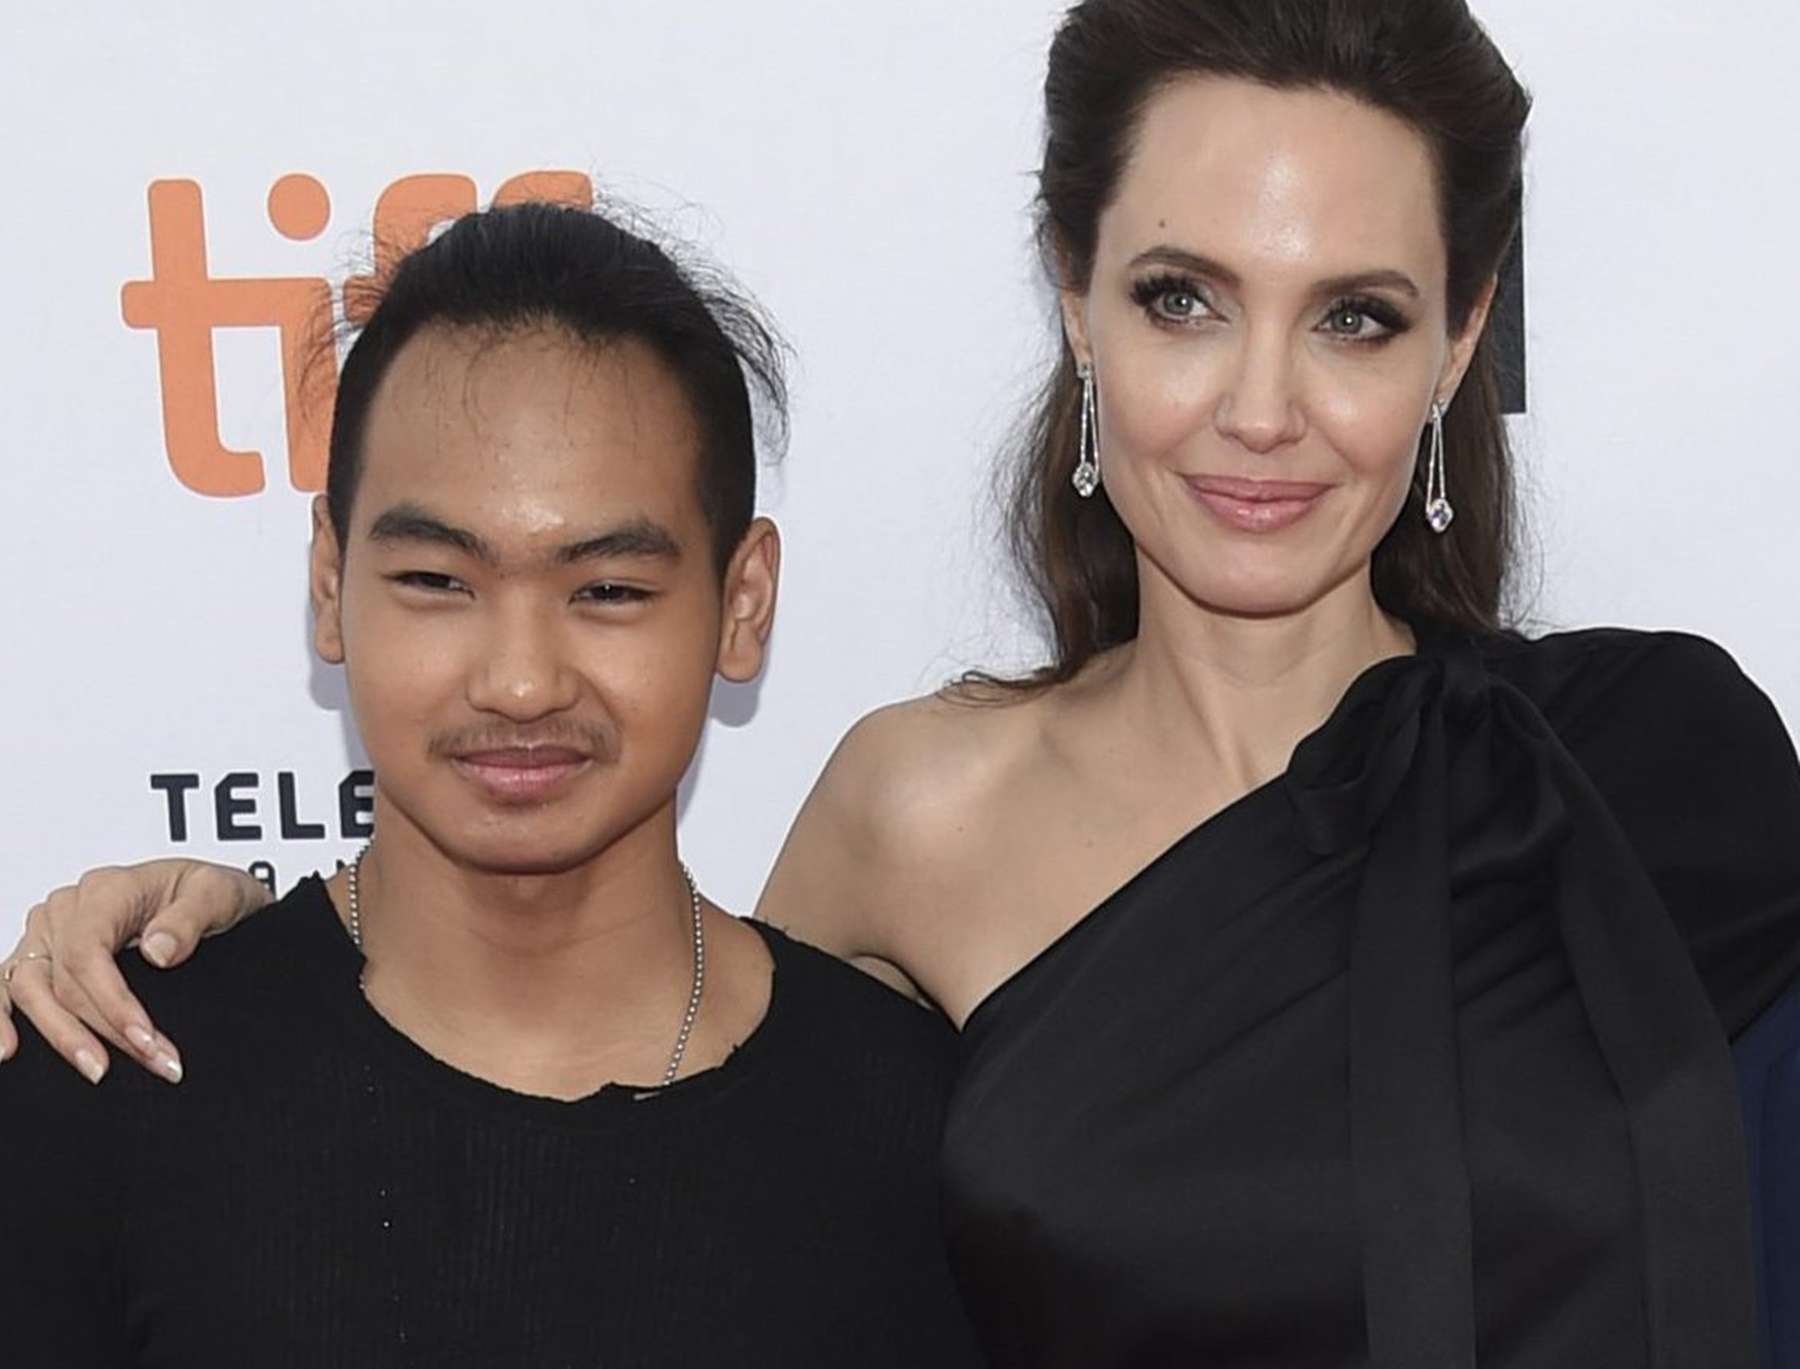 """angelina-jolie-is-in-seven-heaven-and-smiling-despite-brad-pitts-drama-here-is-why"""